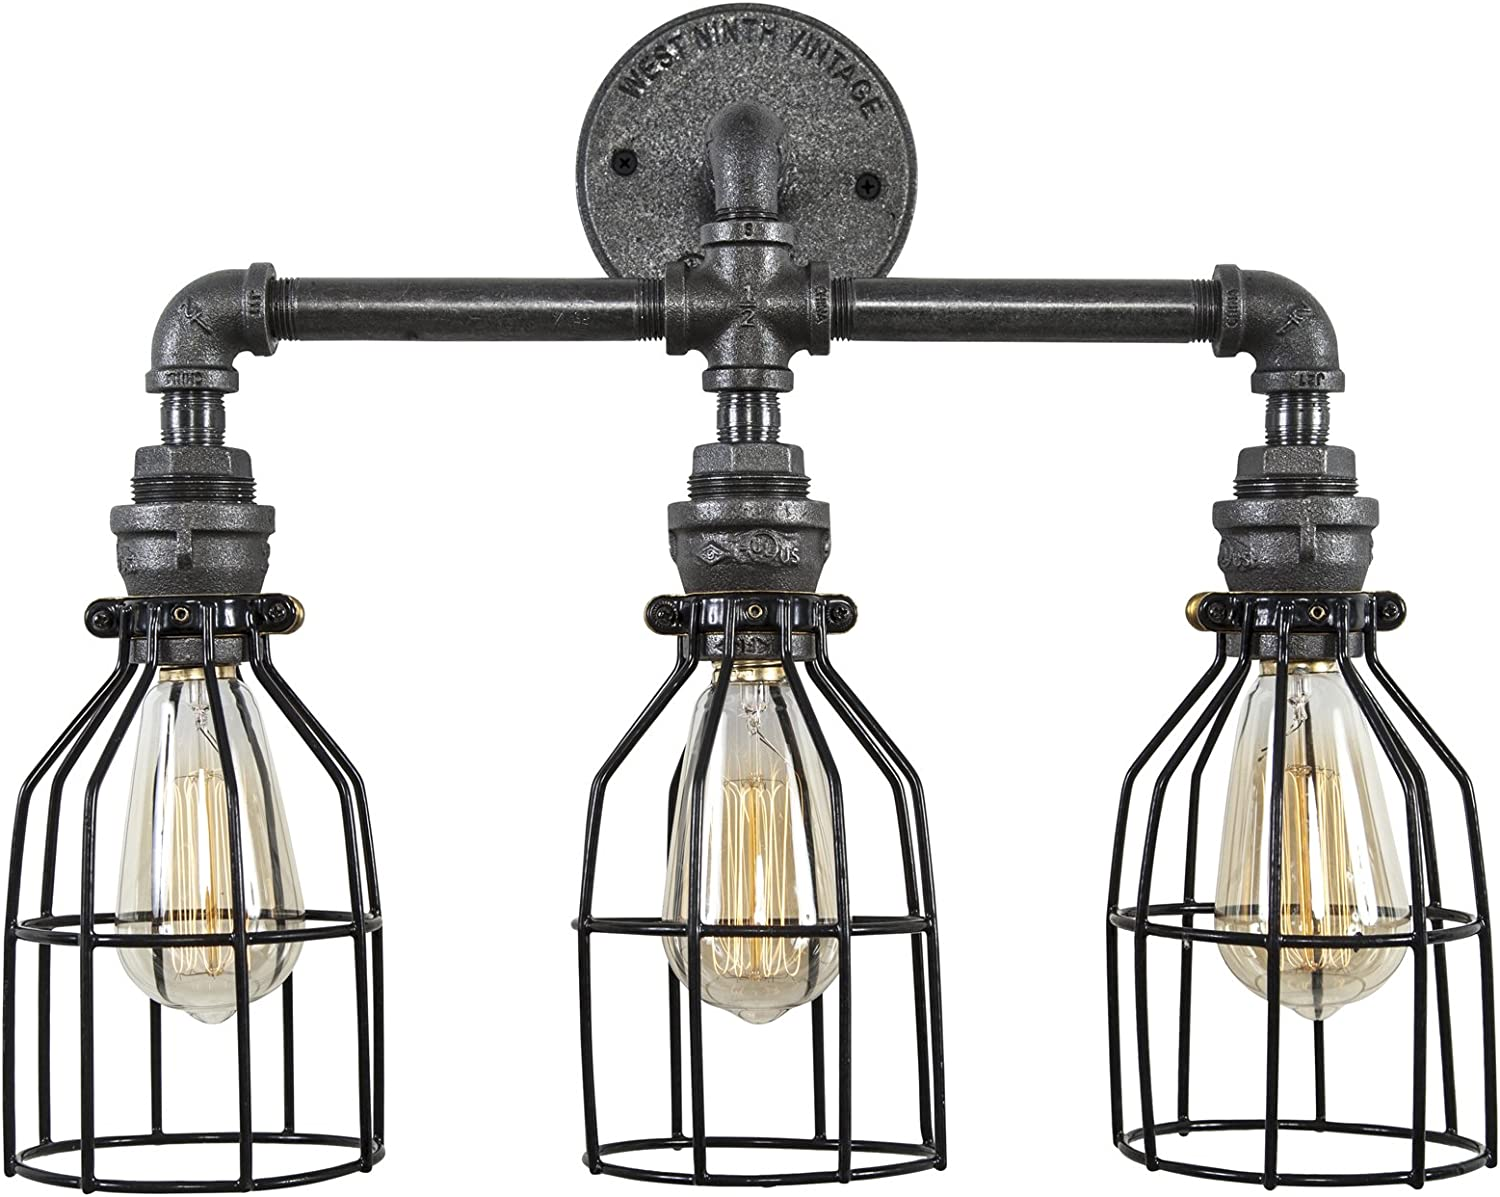 West Ninth Vintage Triple Socket Bathroom Vanity Iron Pipe Light with Cages